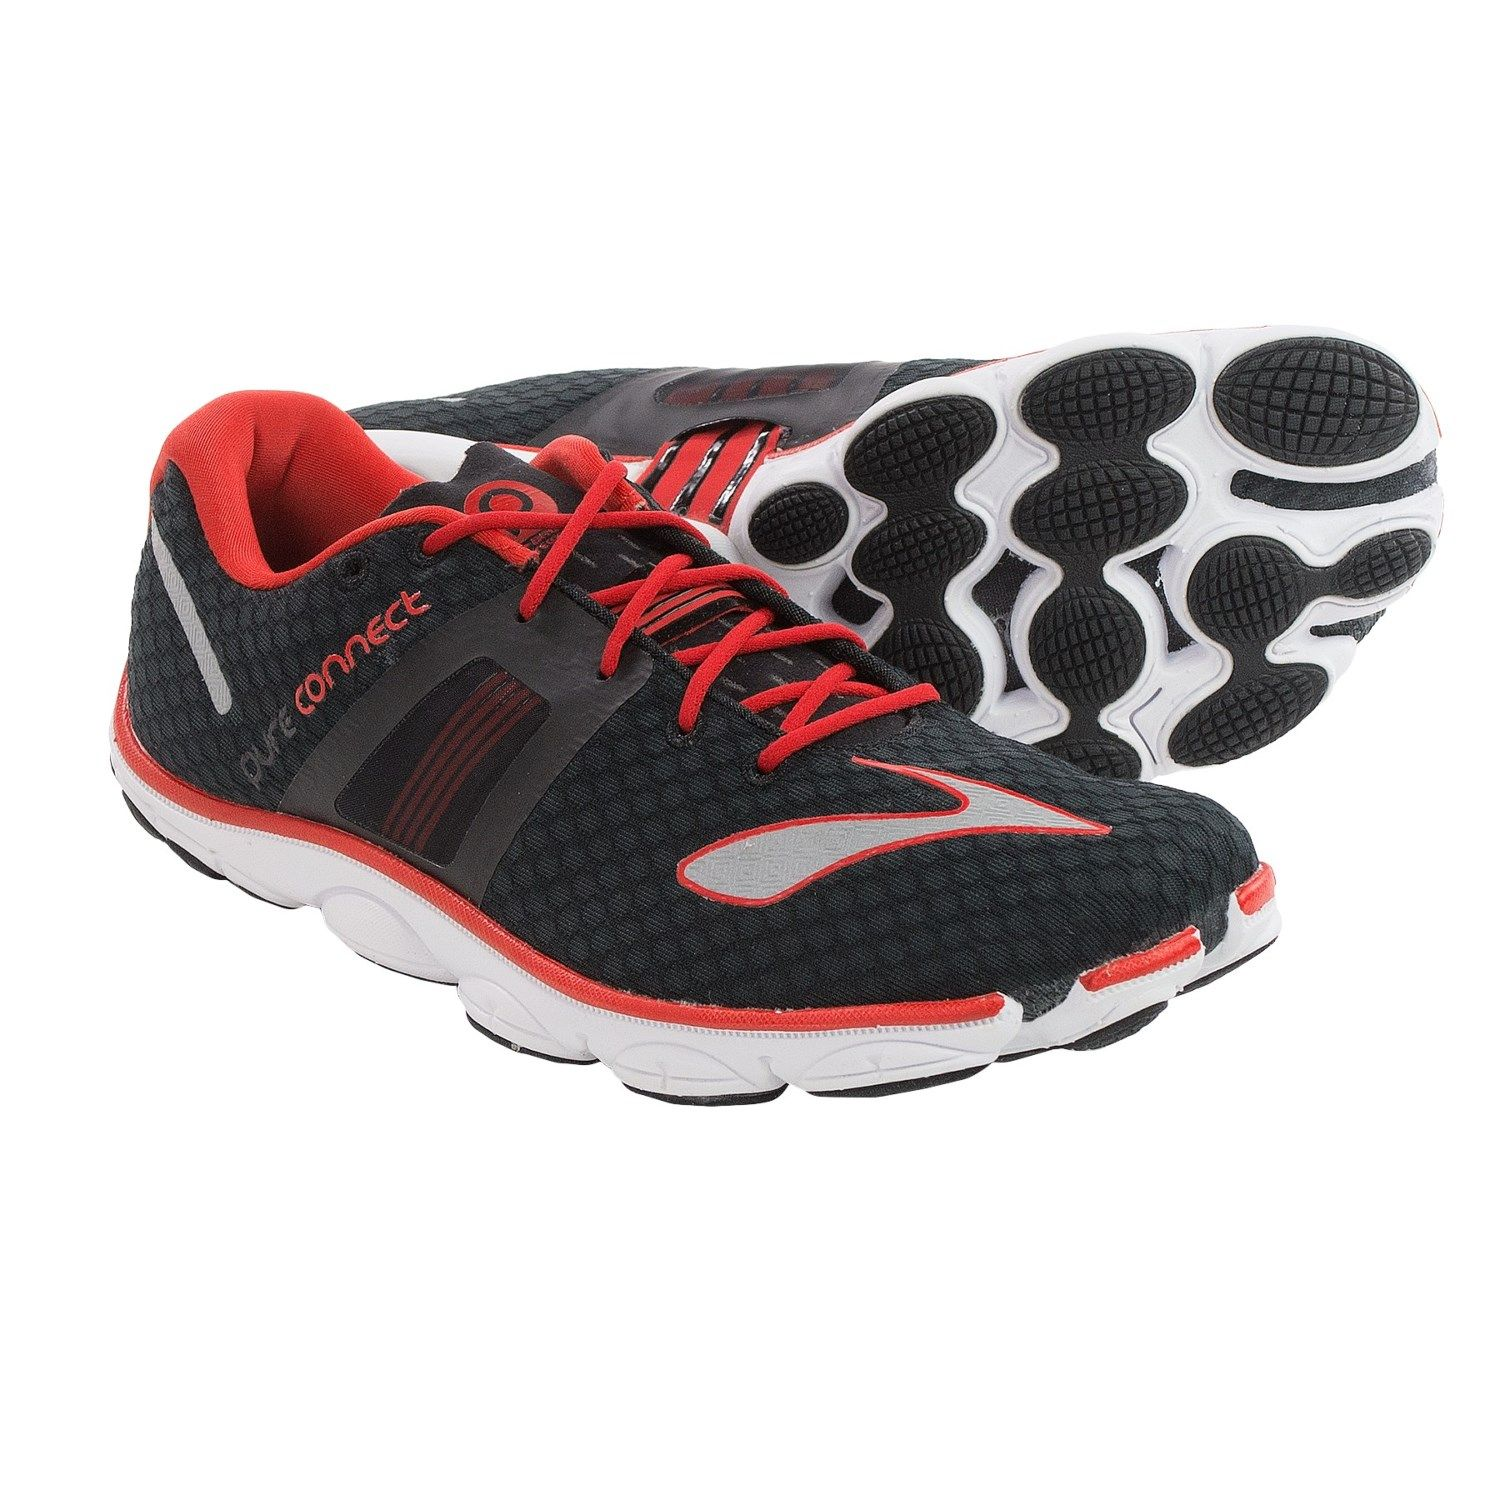 http://i.stpost.com/brooks-pureconnect-4-running-shoes-minimalist-for-men -in-black-high-risk-red-silver~p~106wv_01~1500.2.jpg | My Shoes | Pinterest